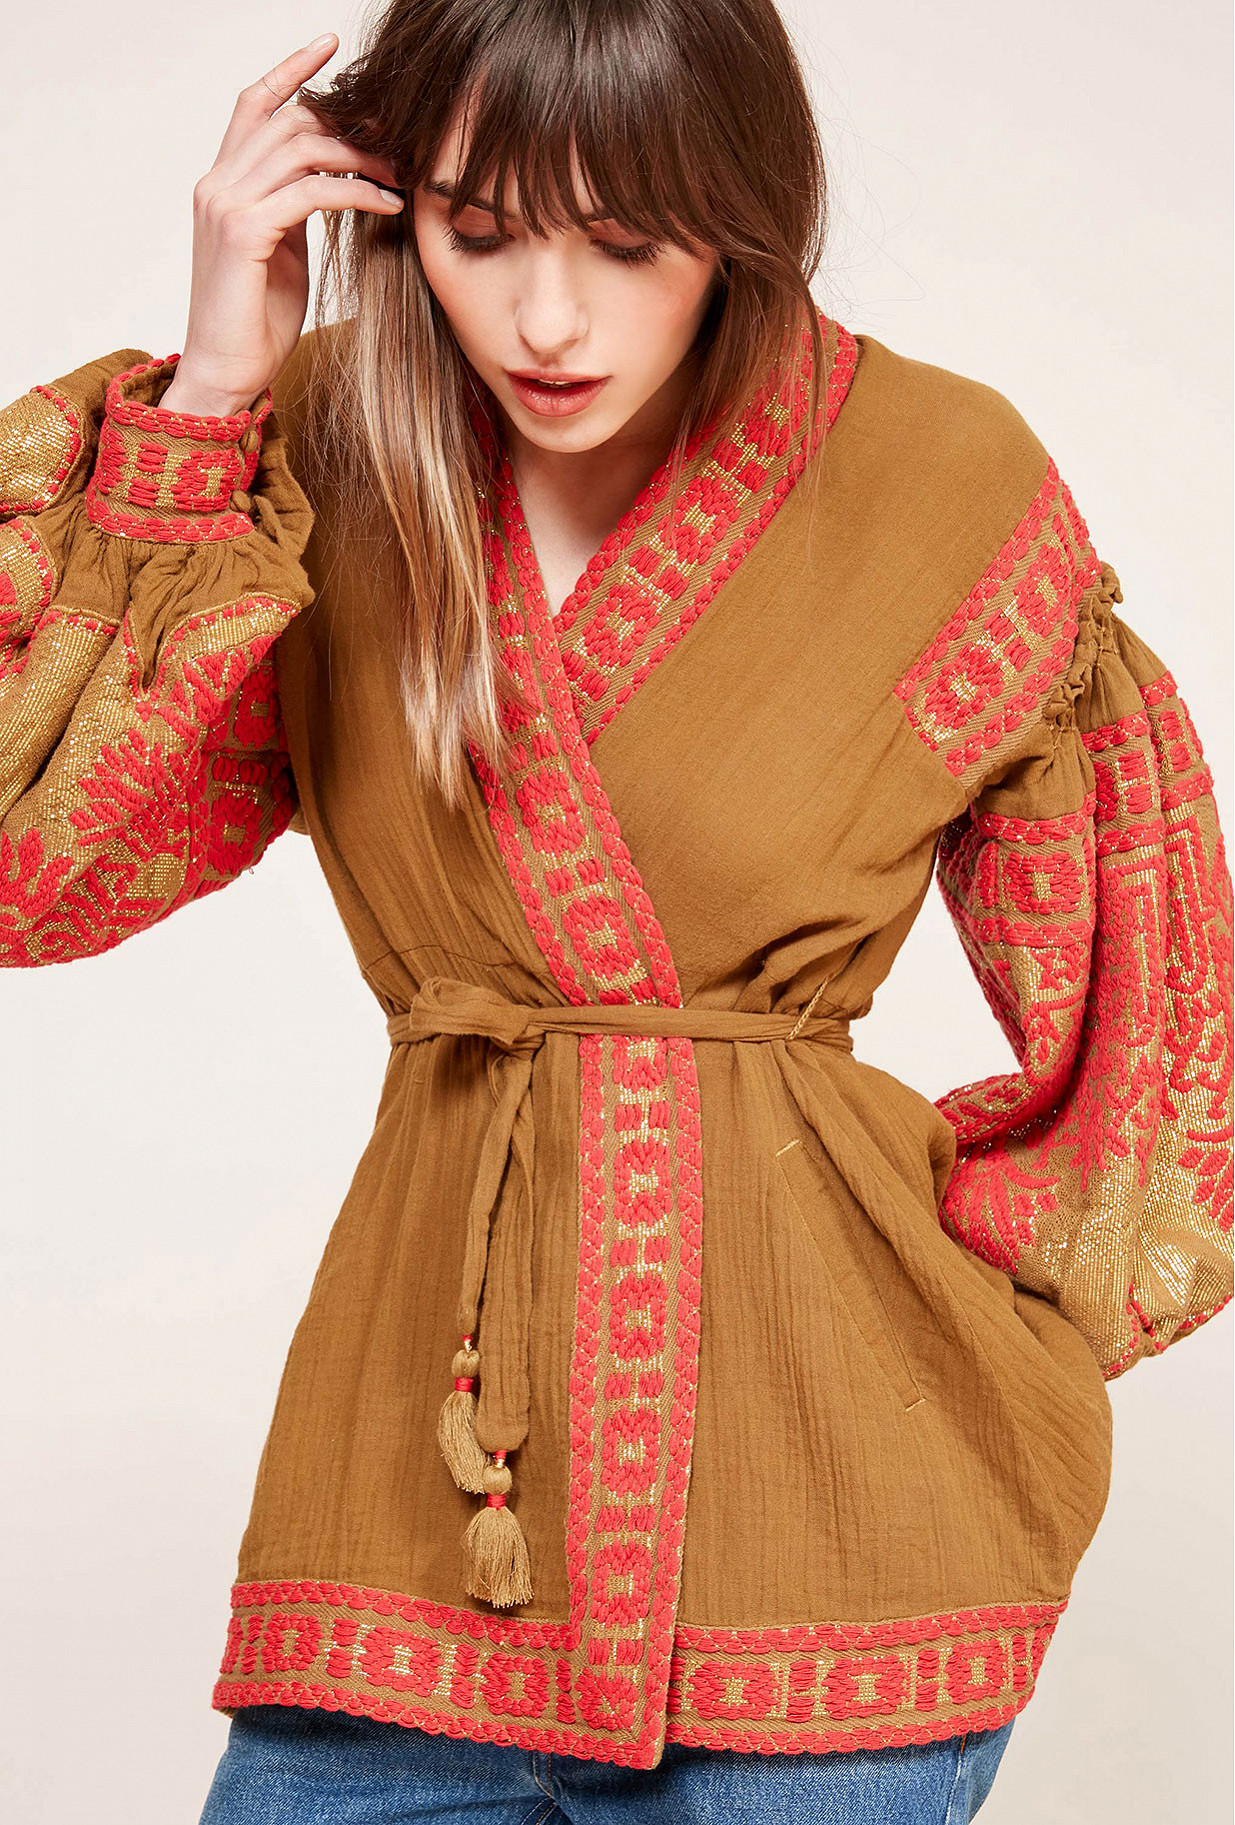 Paris clothes store Kimono  Kasak french designer fashion Paris